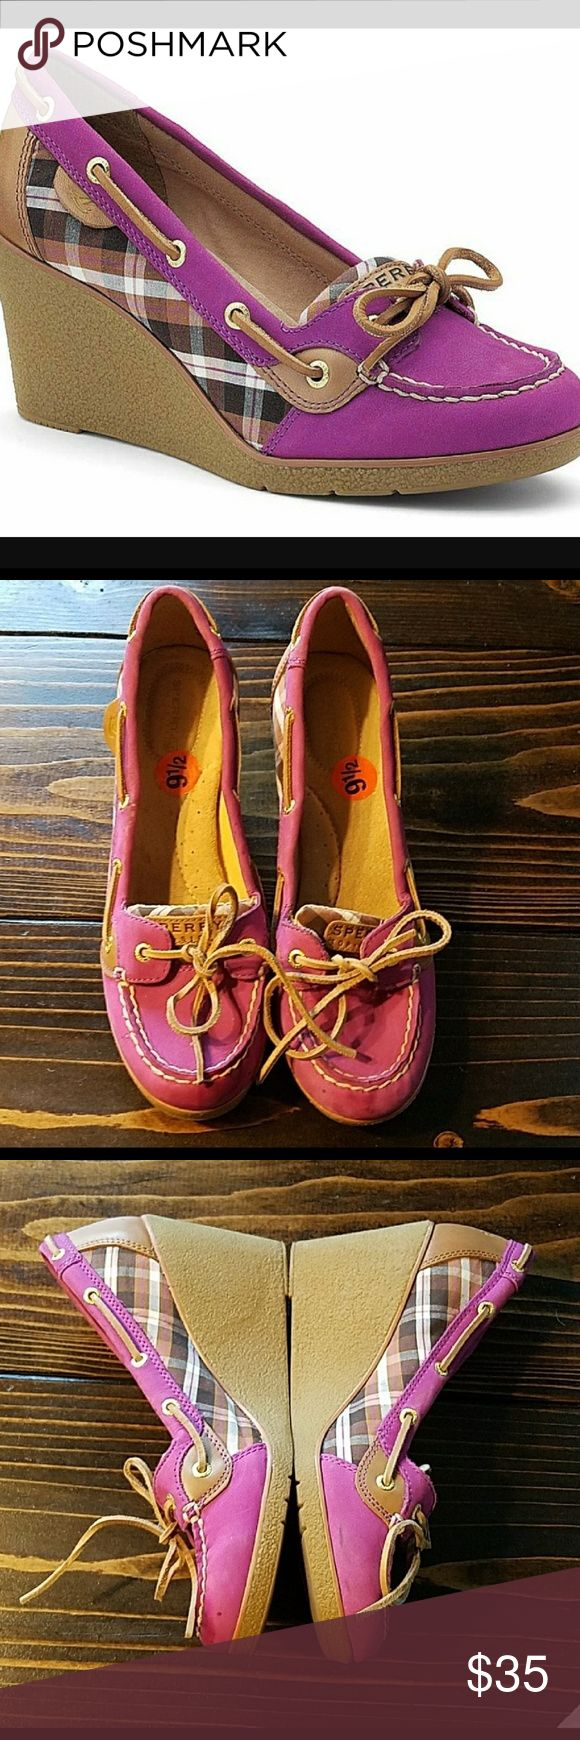 Women's Sperry Top Sider Wedge Heels Goldfish Pink Plaid Leather. Wedge 3 1/2 inches. Needs some cleaning on toe area(a couple minor spots) Soles are 99% tread. Send your look soaring with a wedge-heeled spin on this iconic boat shoe. Spring is just around the corner ladies!  Original price: $120 On sale: $69.99(pre-owned) Sperry Shoes Wedges